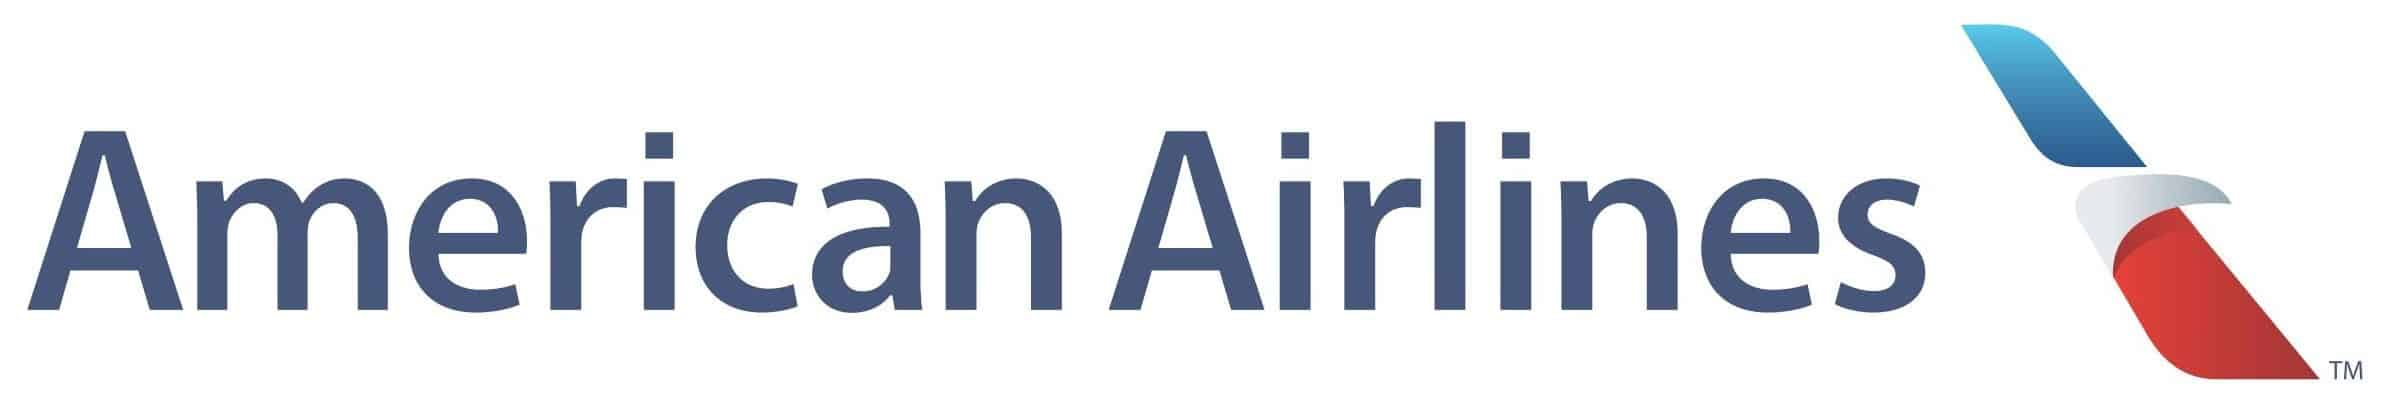 aa_american_airlines-logo